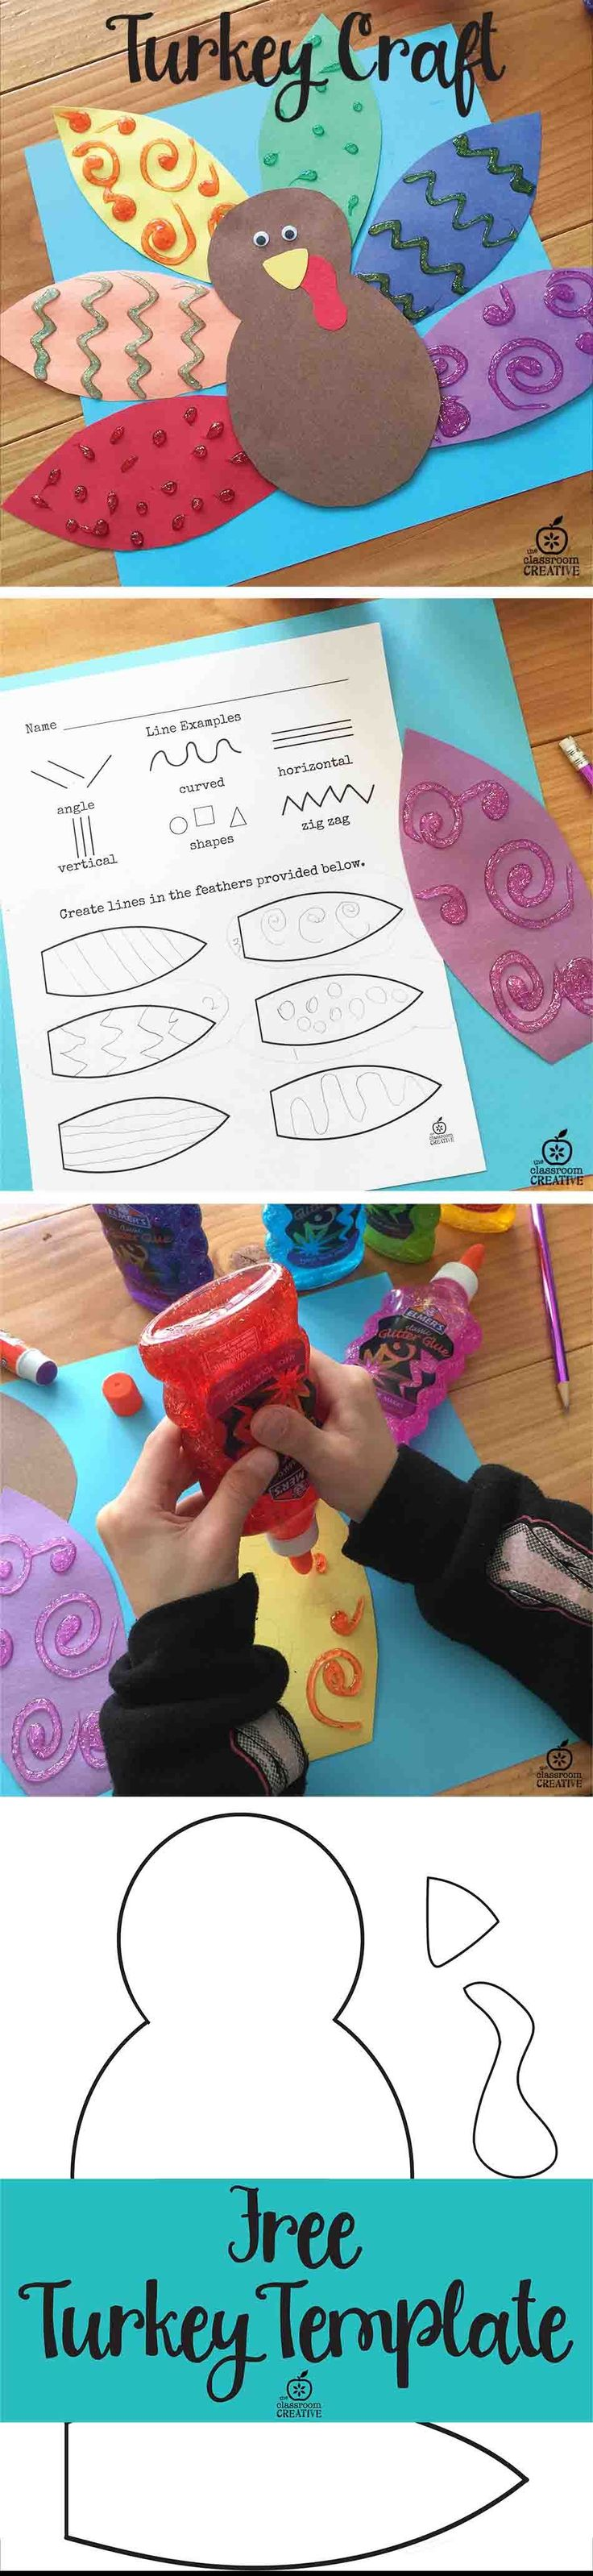 Turkey craft alert! Grab this freebie to hone in on those fine motor skills and pattern recognition to create a cute turkey!